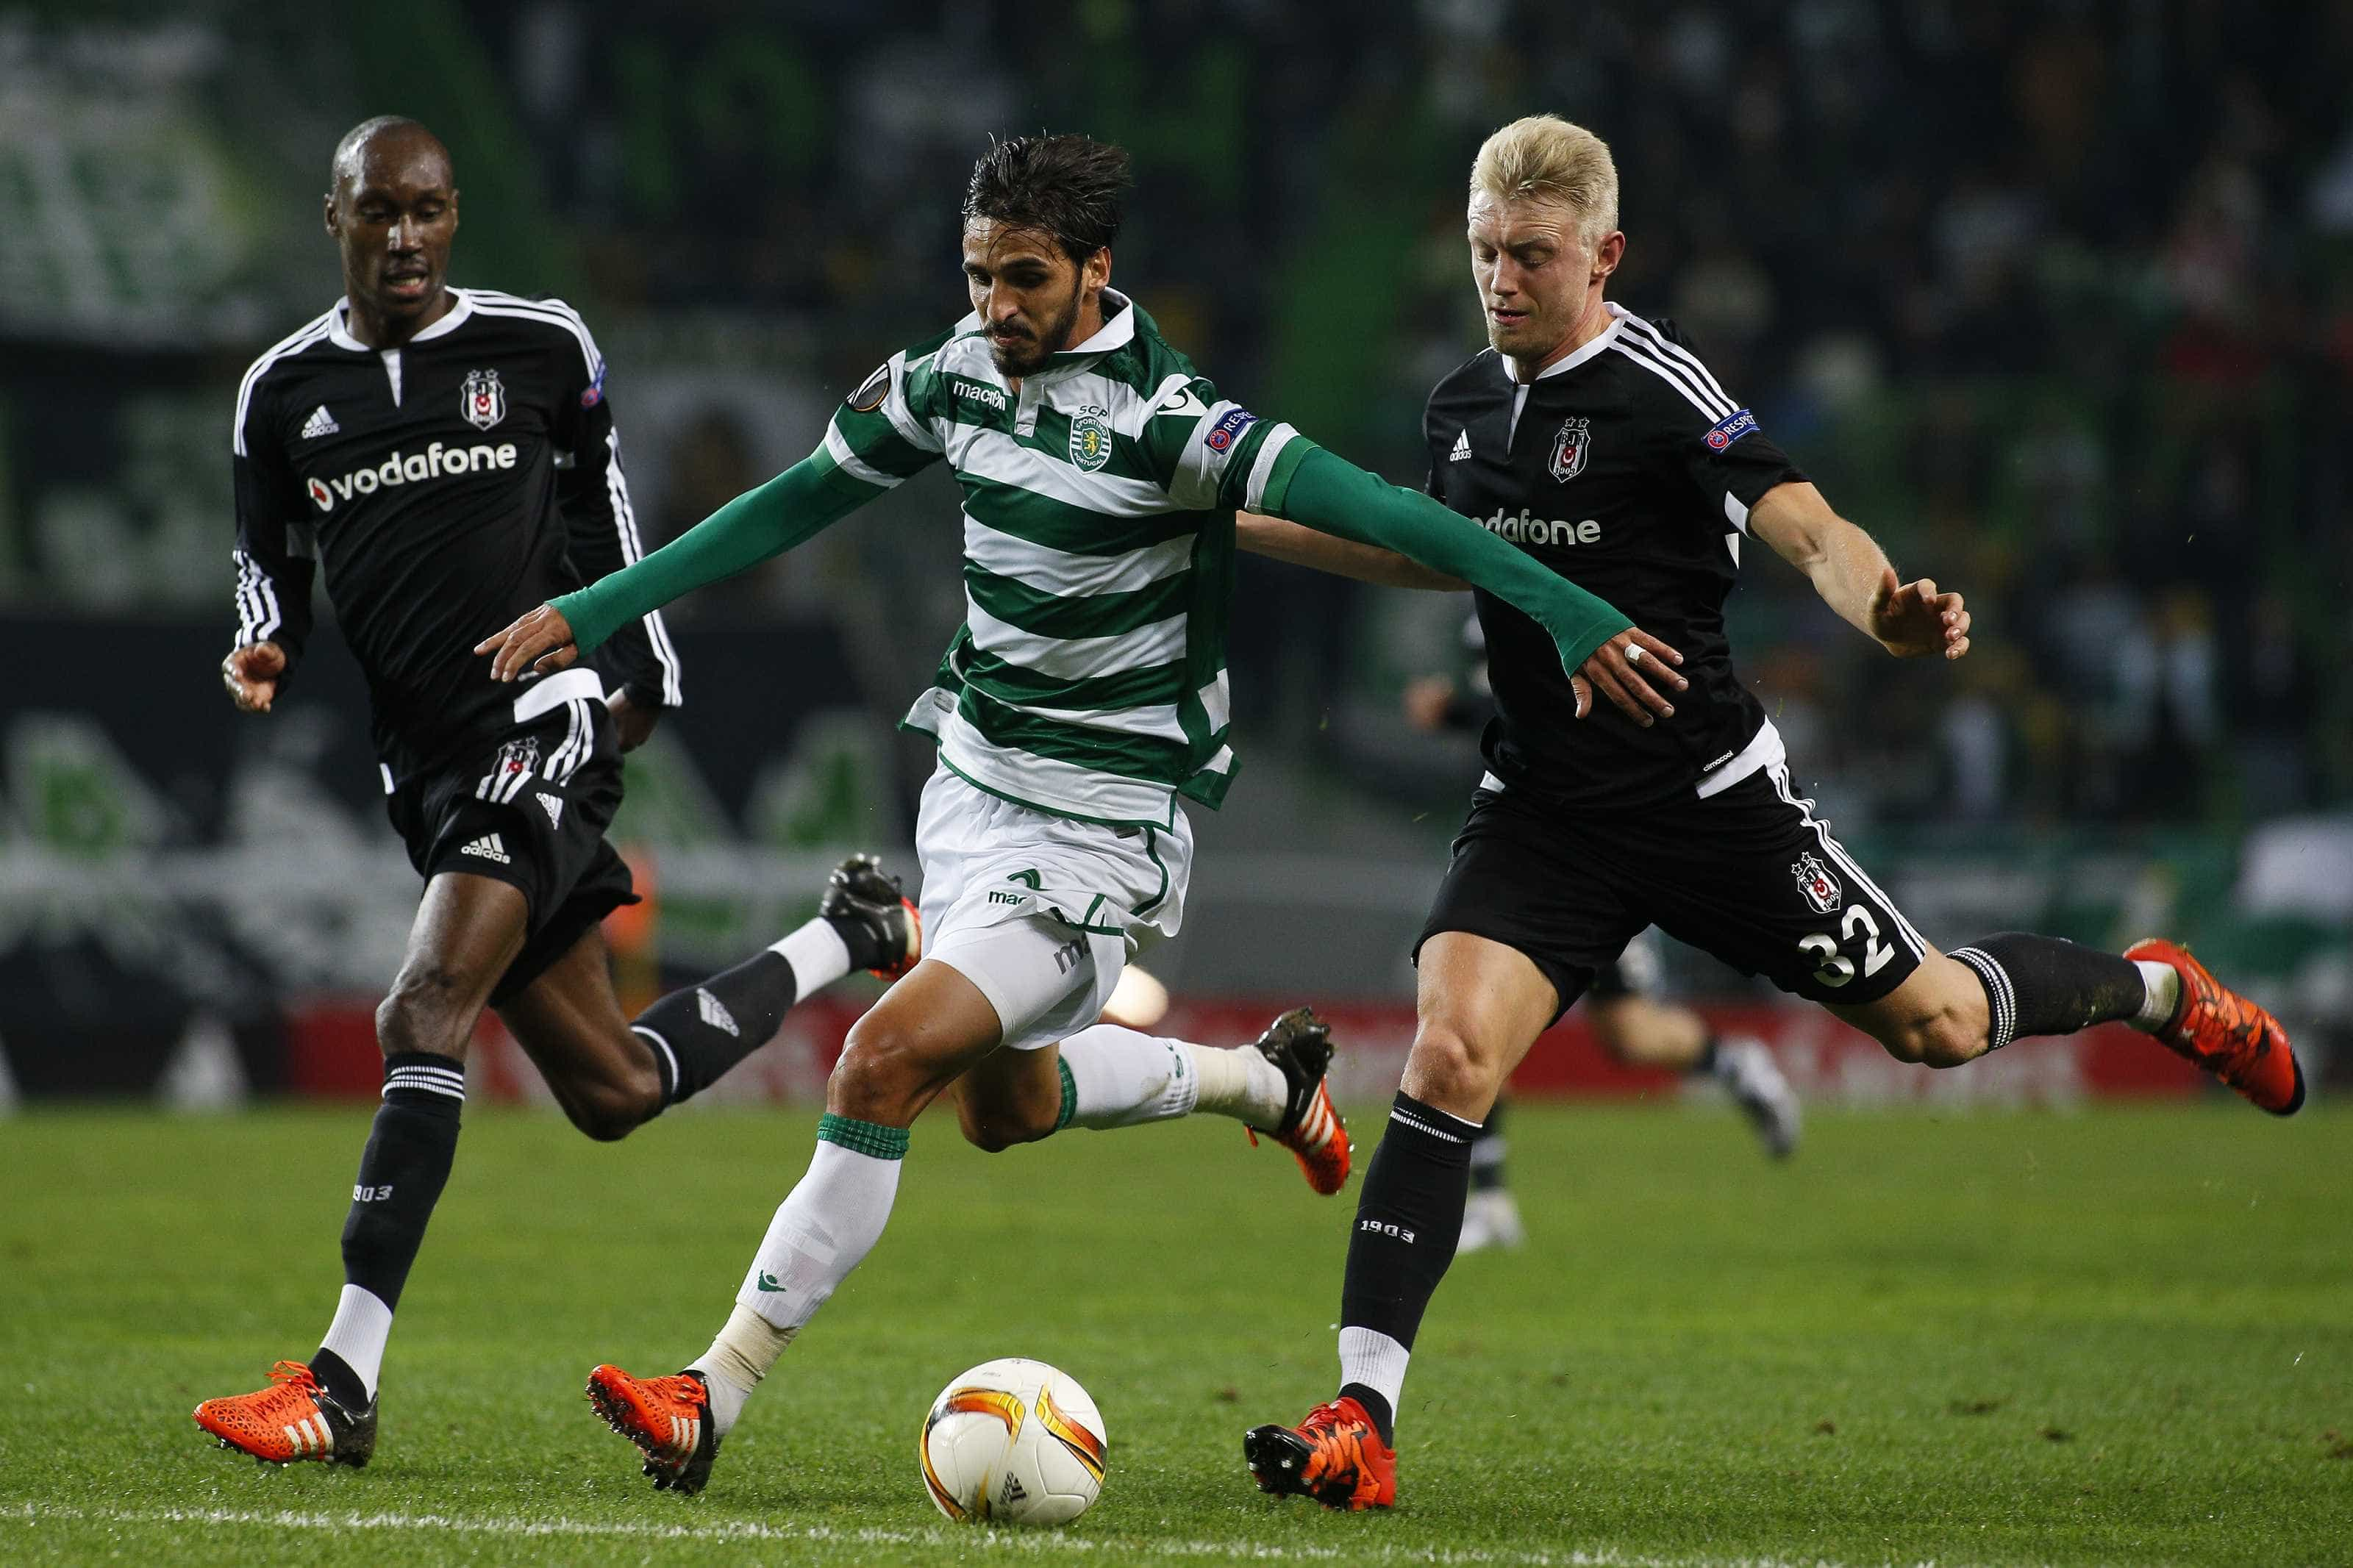 Sporting - Besiktas